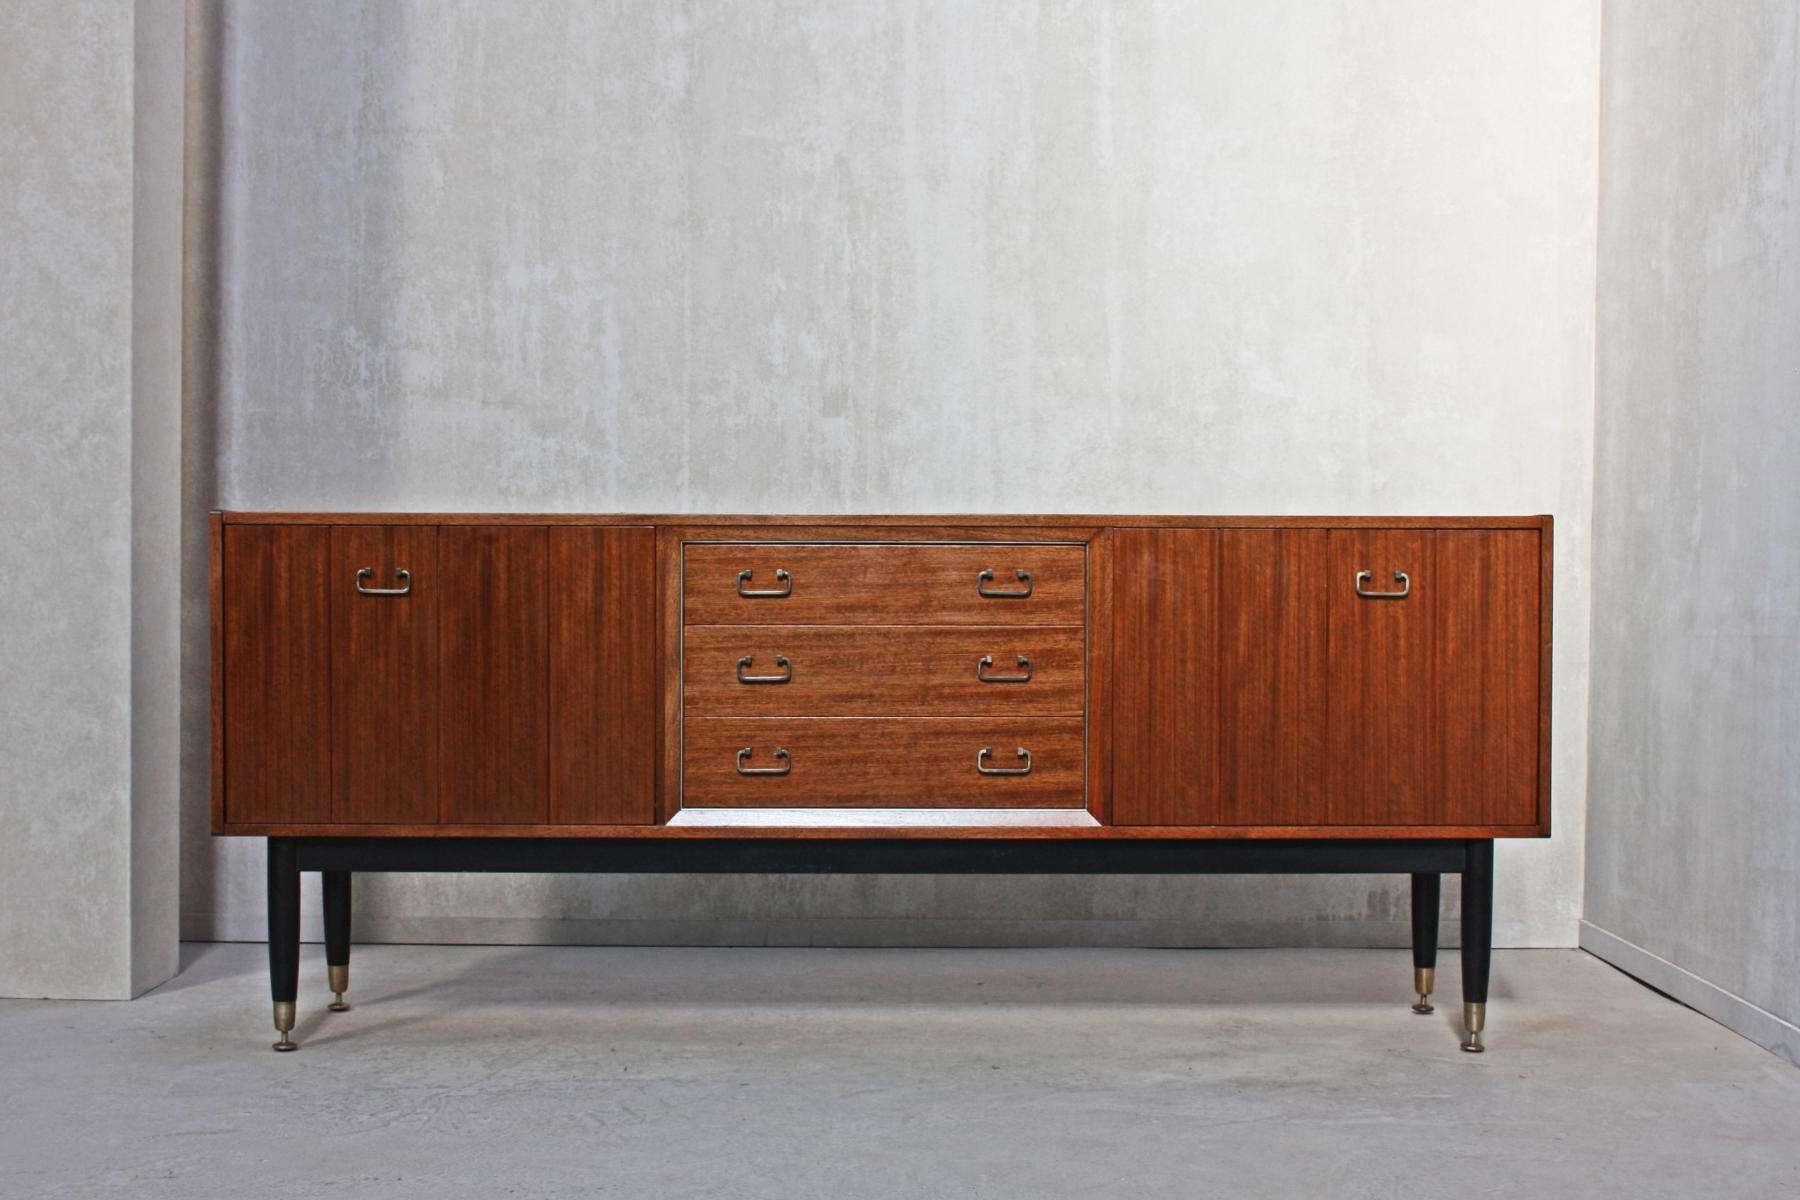 Vintage Sideboard From G Plan, 1950S For Sale At Pamono Throughout G Plan Vintage Sideboards (Gallery 1 of 20)